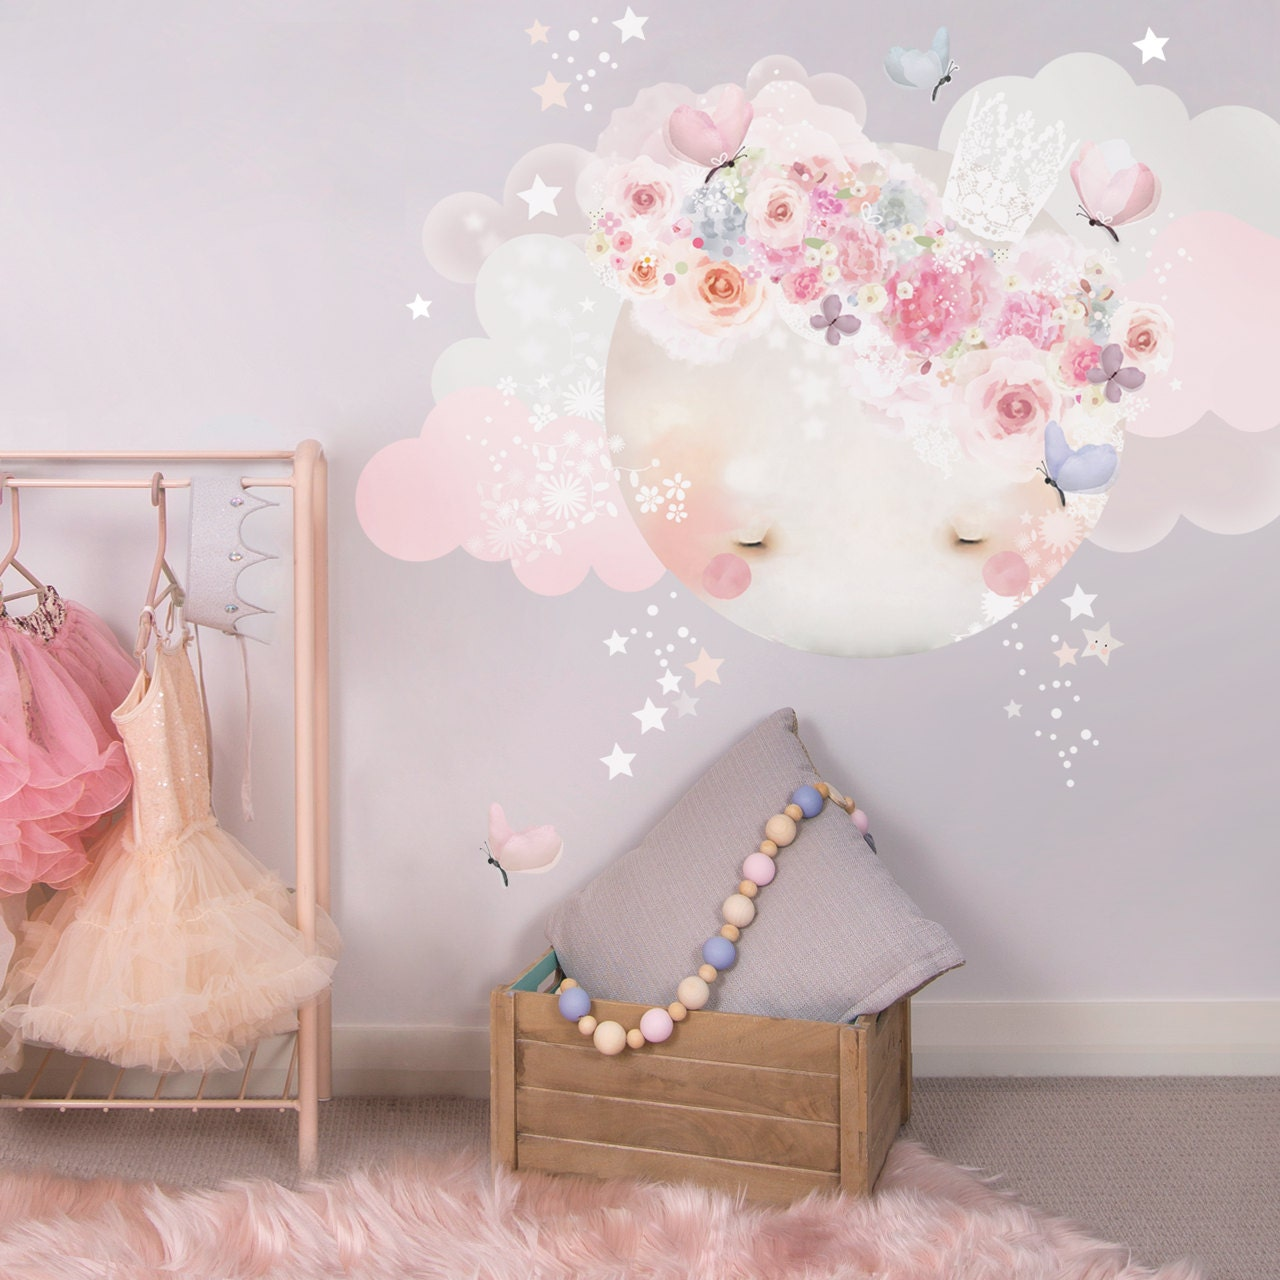 Sleepy moon fabric decal wall stickers pretty floral girls zoom amipublicfo Image collections